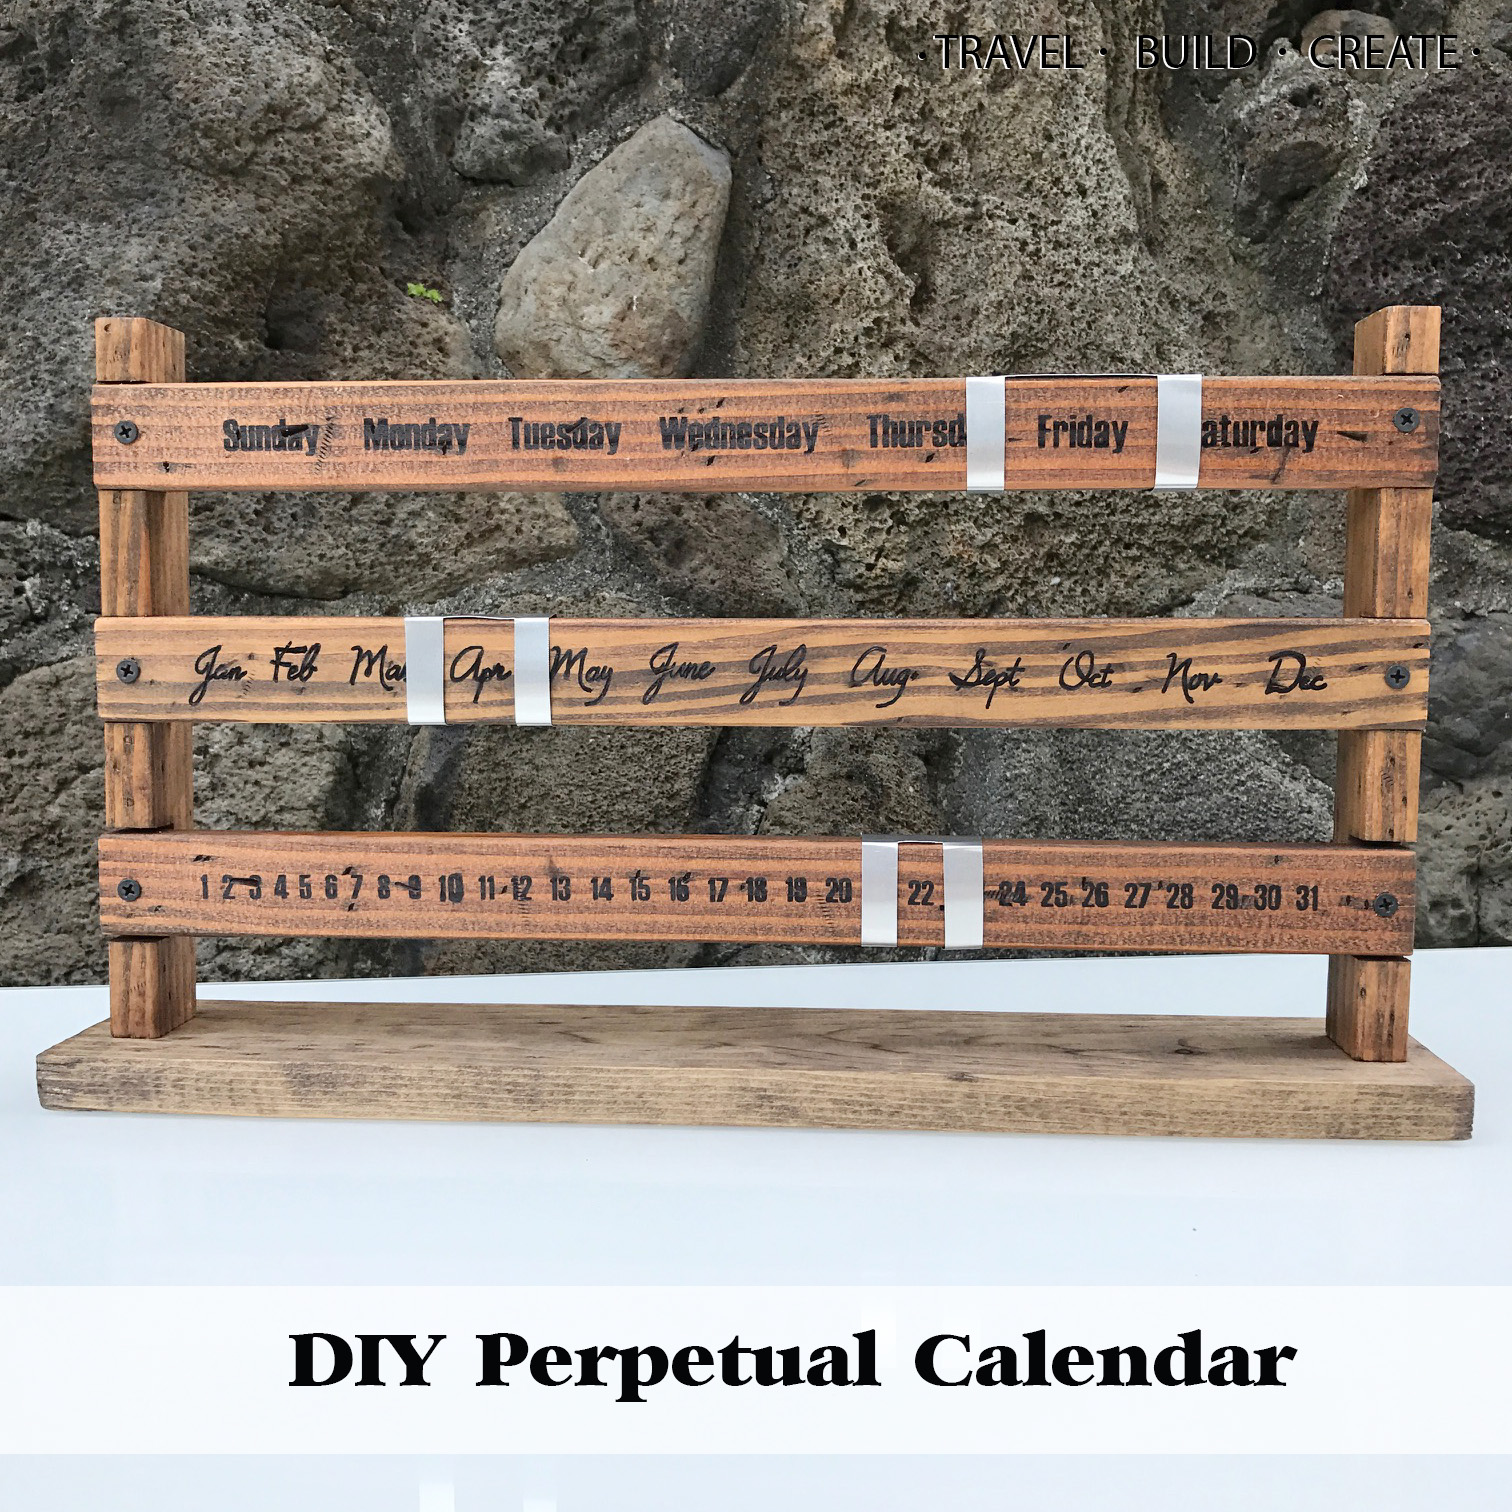 How To Make A Perpetual Calendar | Diy Perpetual Calendar Sliding Wood Calendar Tutorial